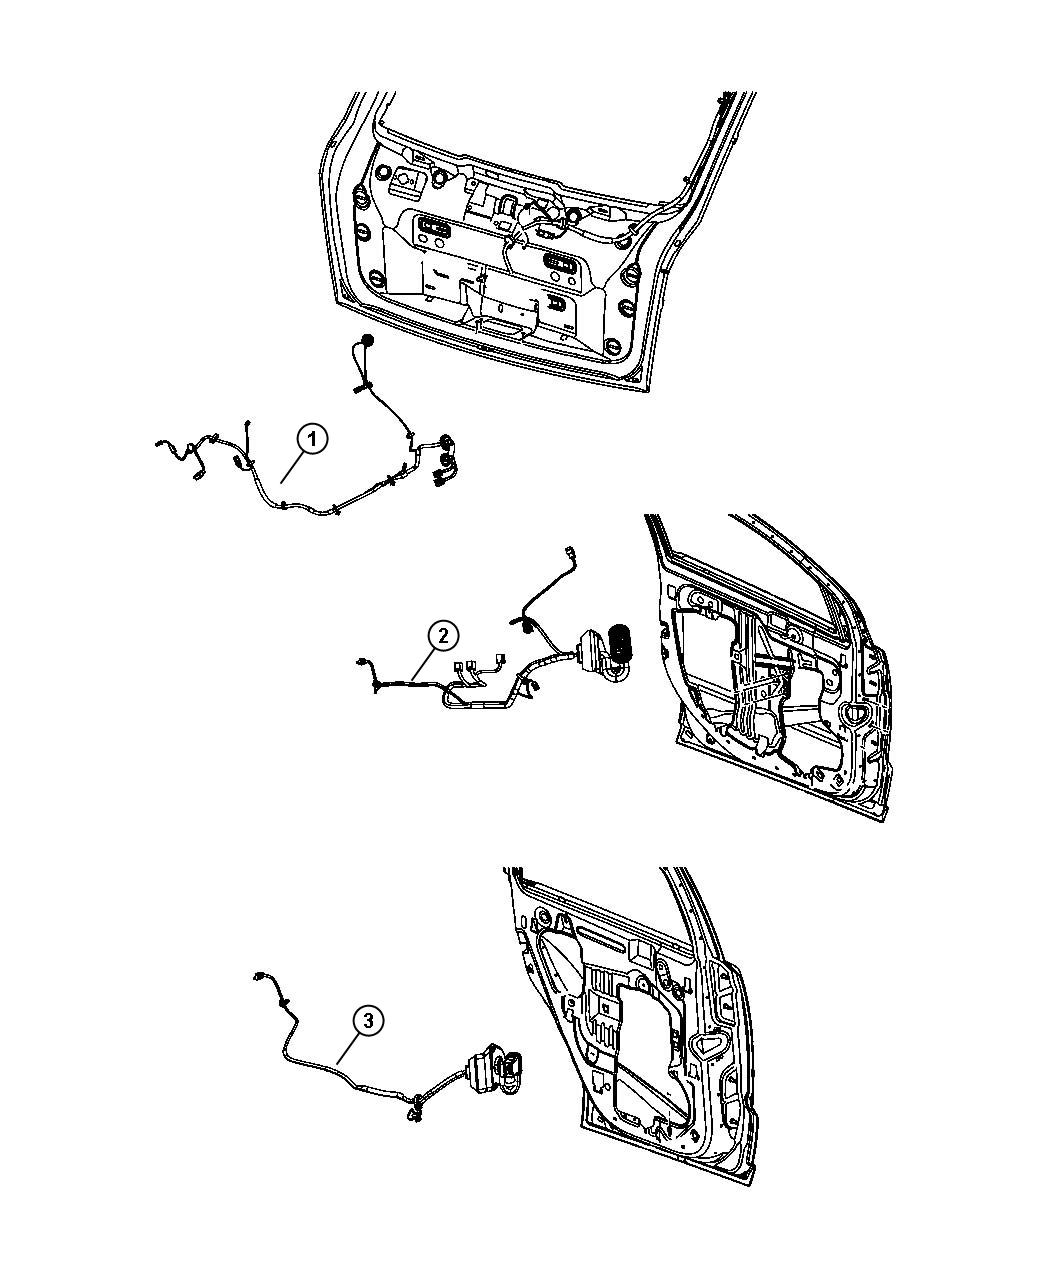 tags: #8 ohm speaker wiring#speakers to amp wiring diagram#2 8 ohm speaker  wiring diagram#guitar speaker wiring diagrams#4 ohm subwoofer wiring